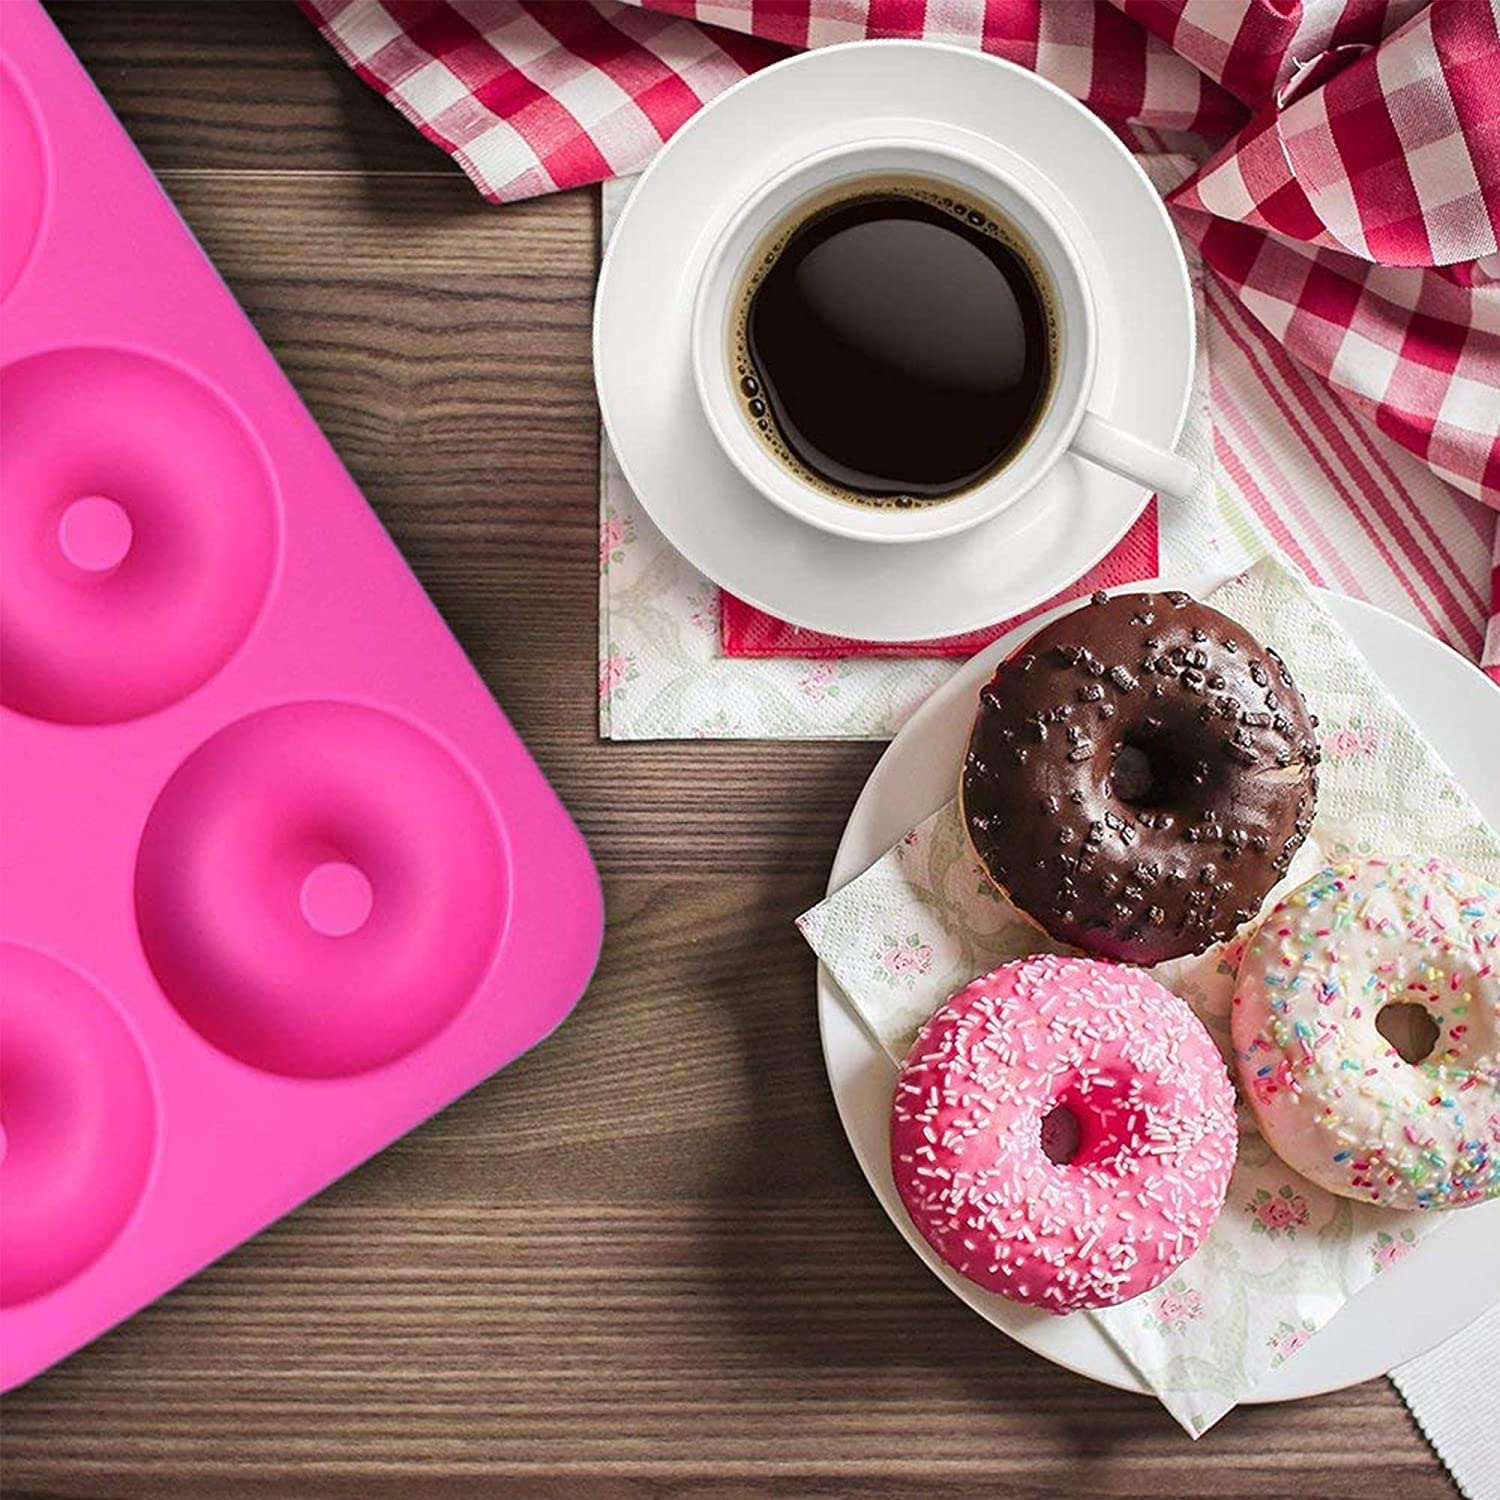 3Pack Silicone Donut Pan Molds Pastry Basting Brush,Simuer Non-Stick 6-Cavity Baking Moulds Bake Doughnuts Muffin Cups Cake Baking Ring Biscuit Mold Dishwasher Oven Microwave Freezer Safe